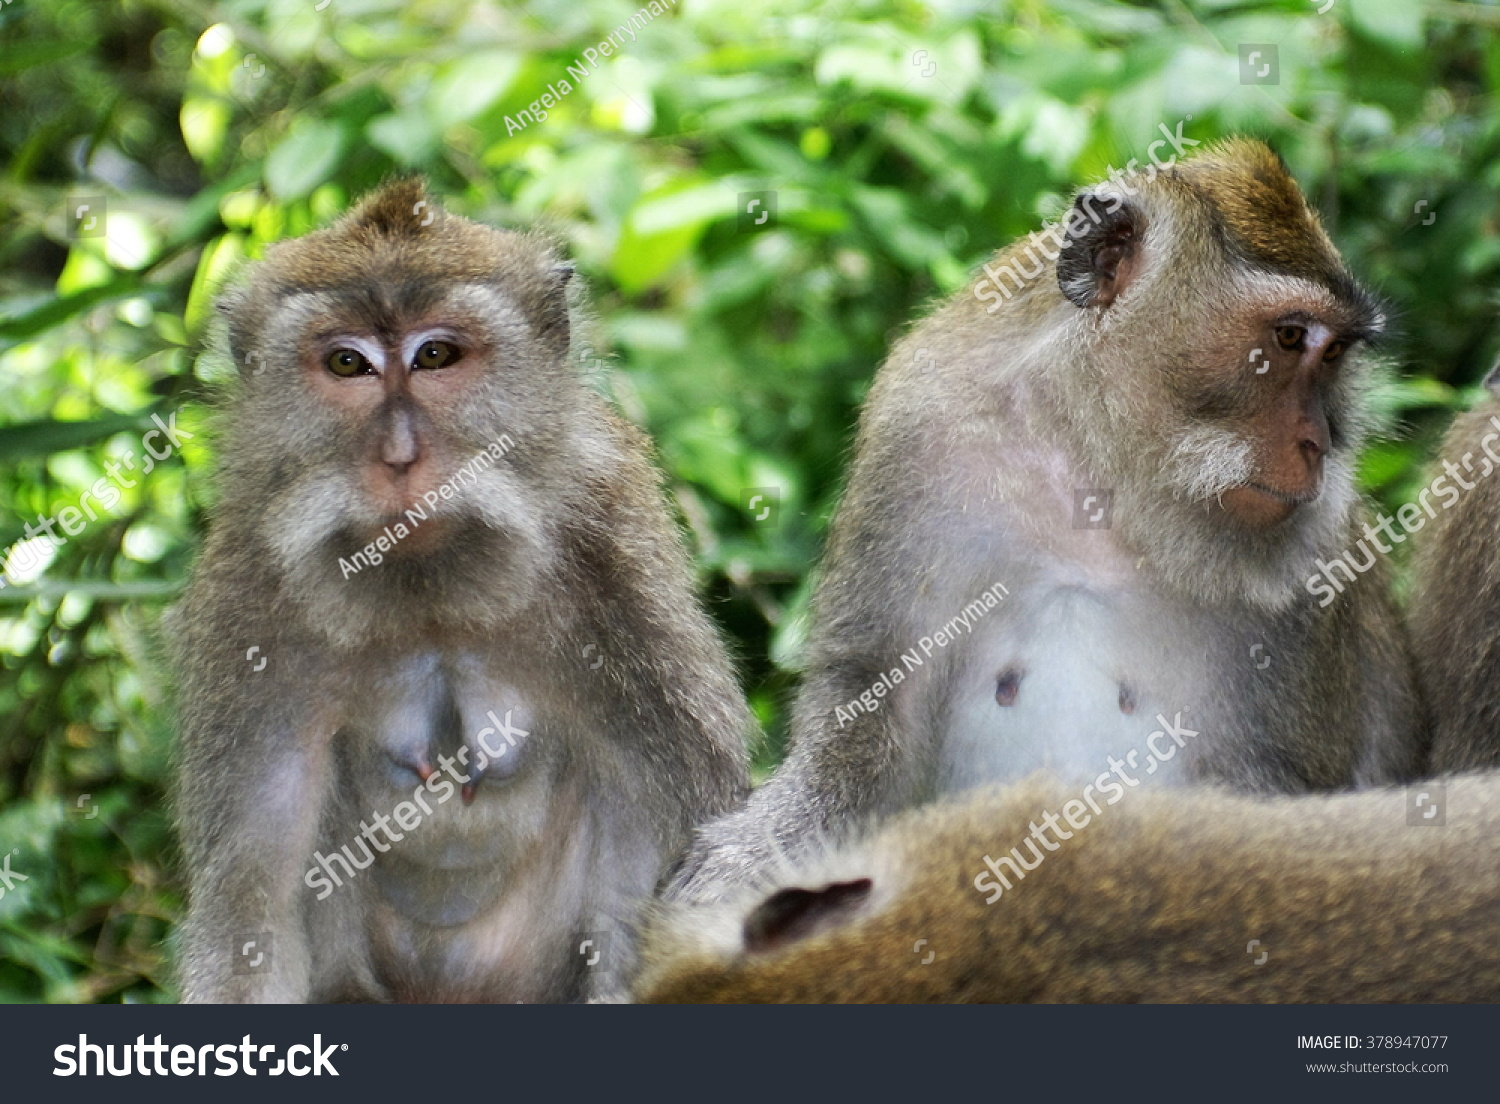 Crab-eating macaques (Macaca fascicularis) sitting on a stone wall #378947077